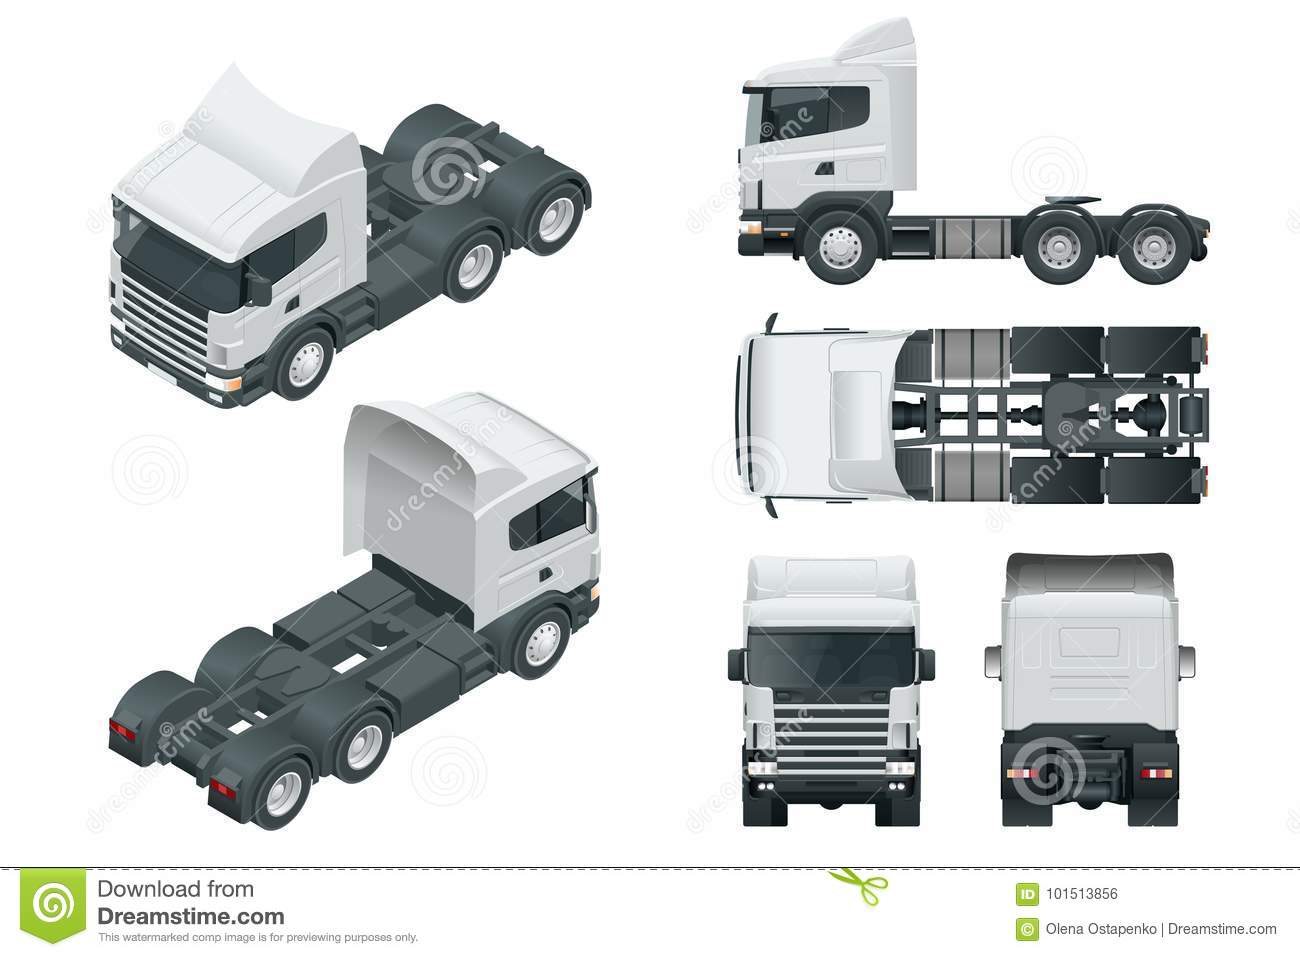 Truck tractor or semi-trailer truck. View front, rear, side, top and isometry front, back.. Cargo delivering vehicle